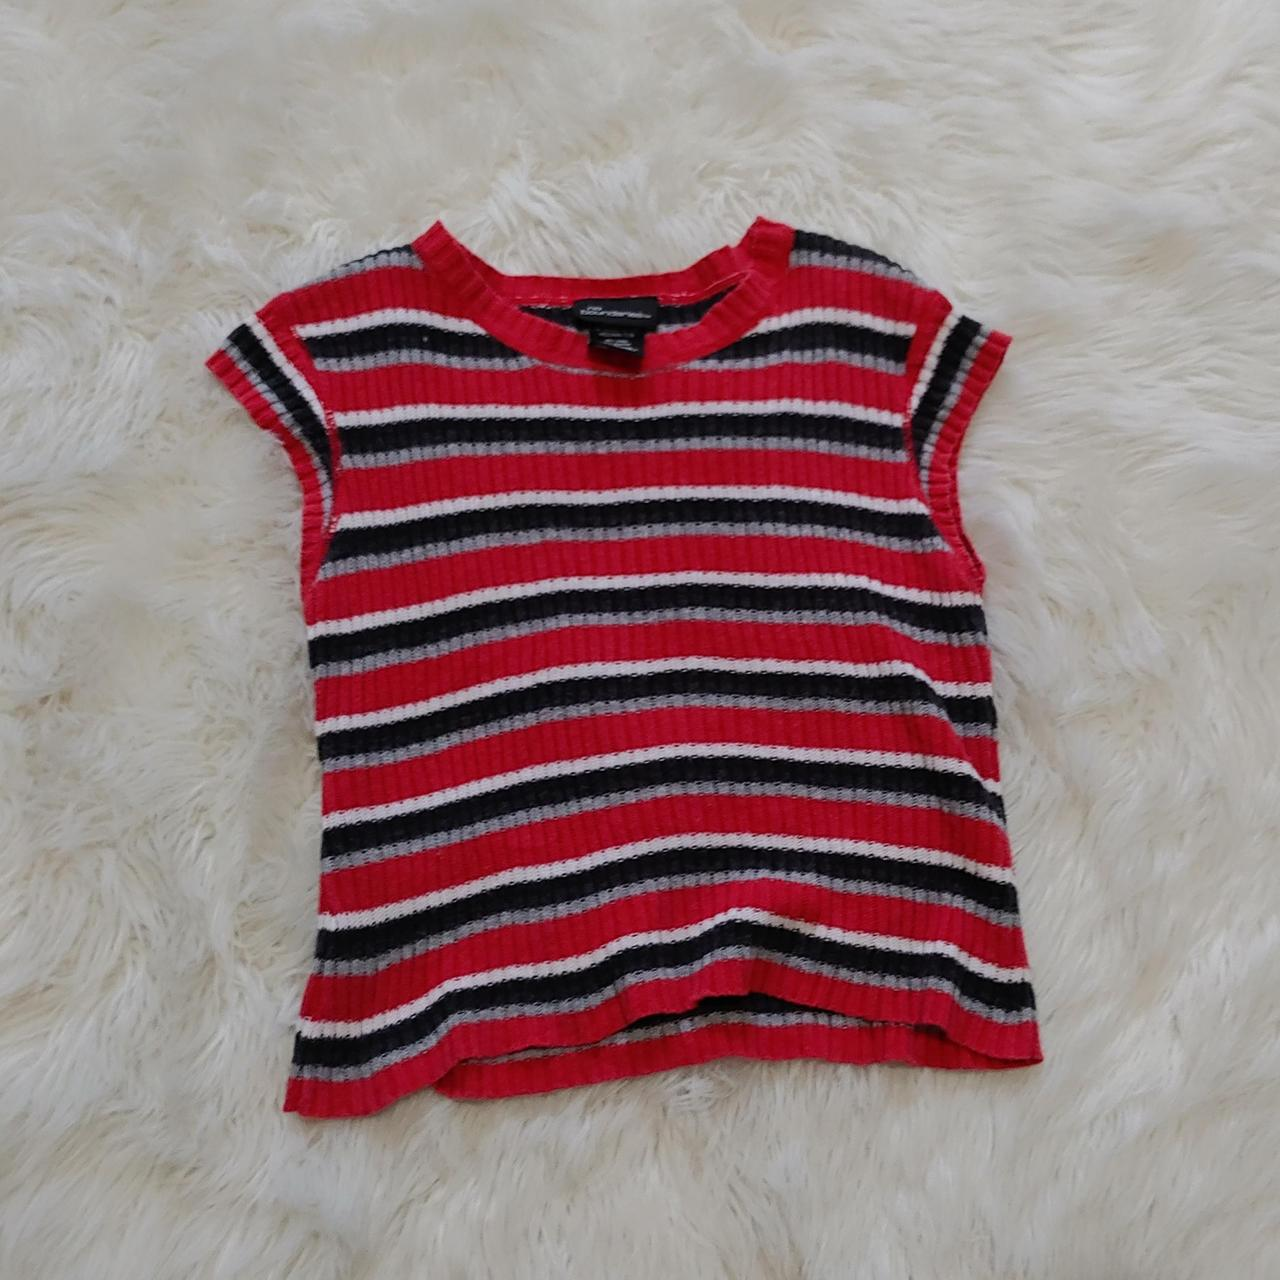 Product Image 1 - Vintage redtop from no boundaries!